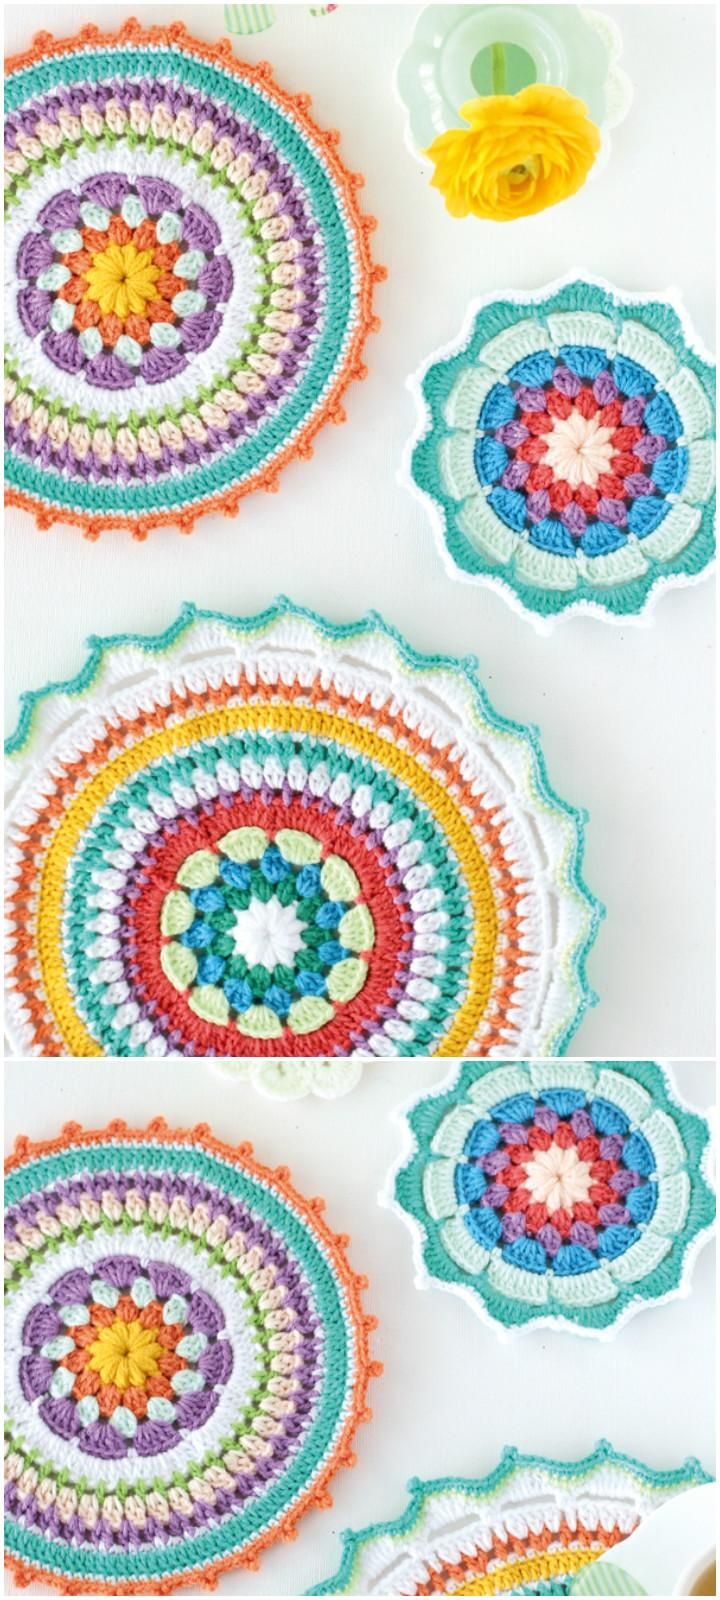 60+ Free Crochet Mandala Patterns - Page 4 of 12 | Topflappen ...